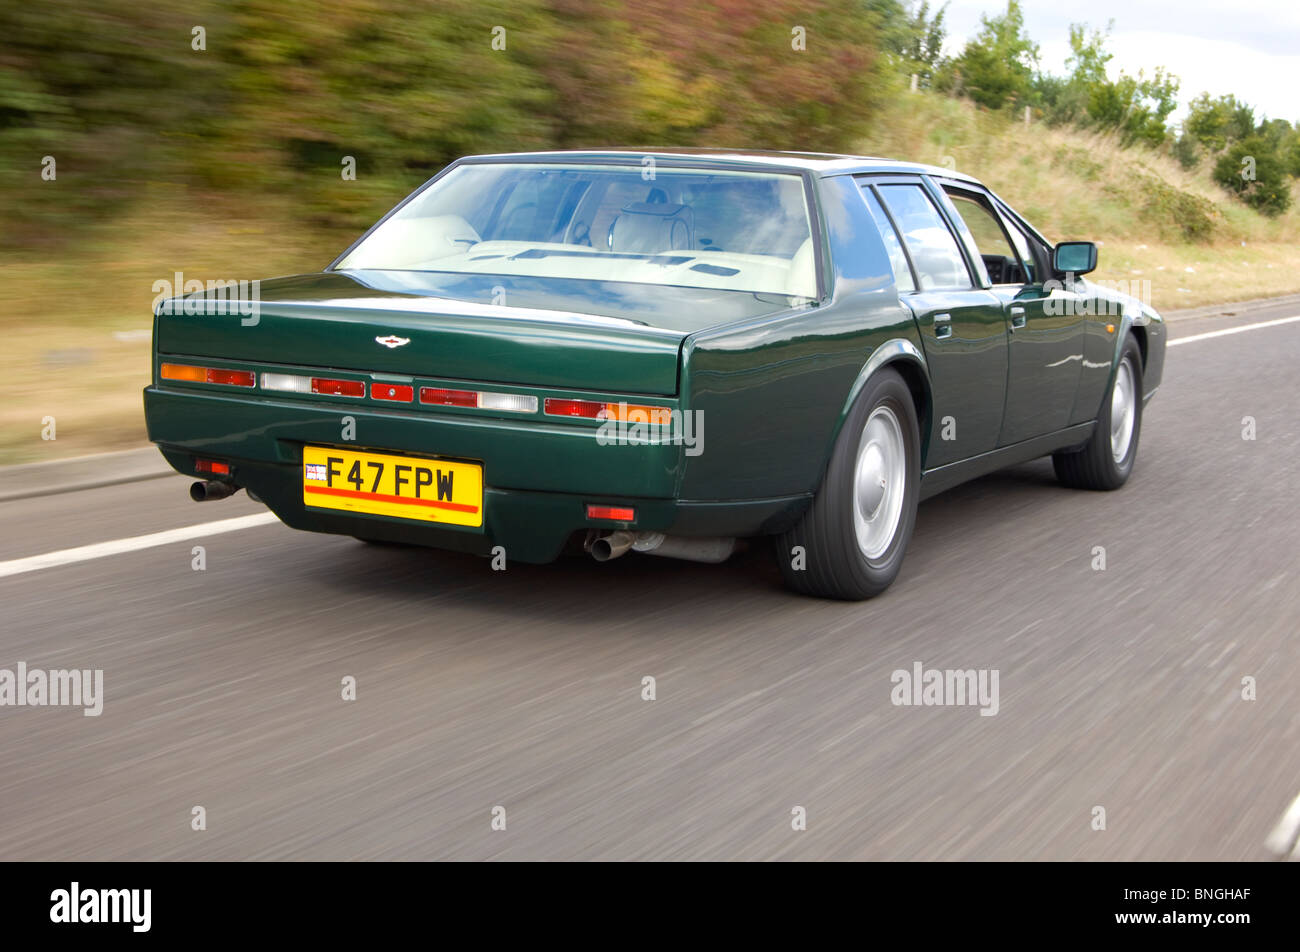 Aston Martin Lagonda 4 Door Saloon Super Car 1976 1989 Stock Photo Alamy